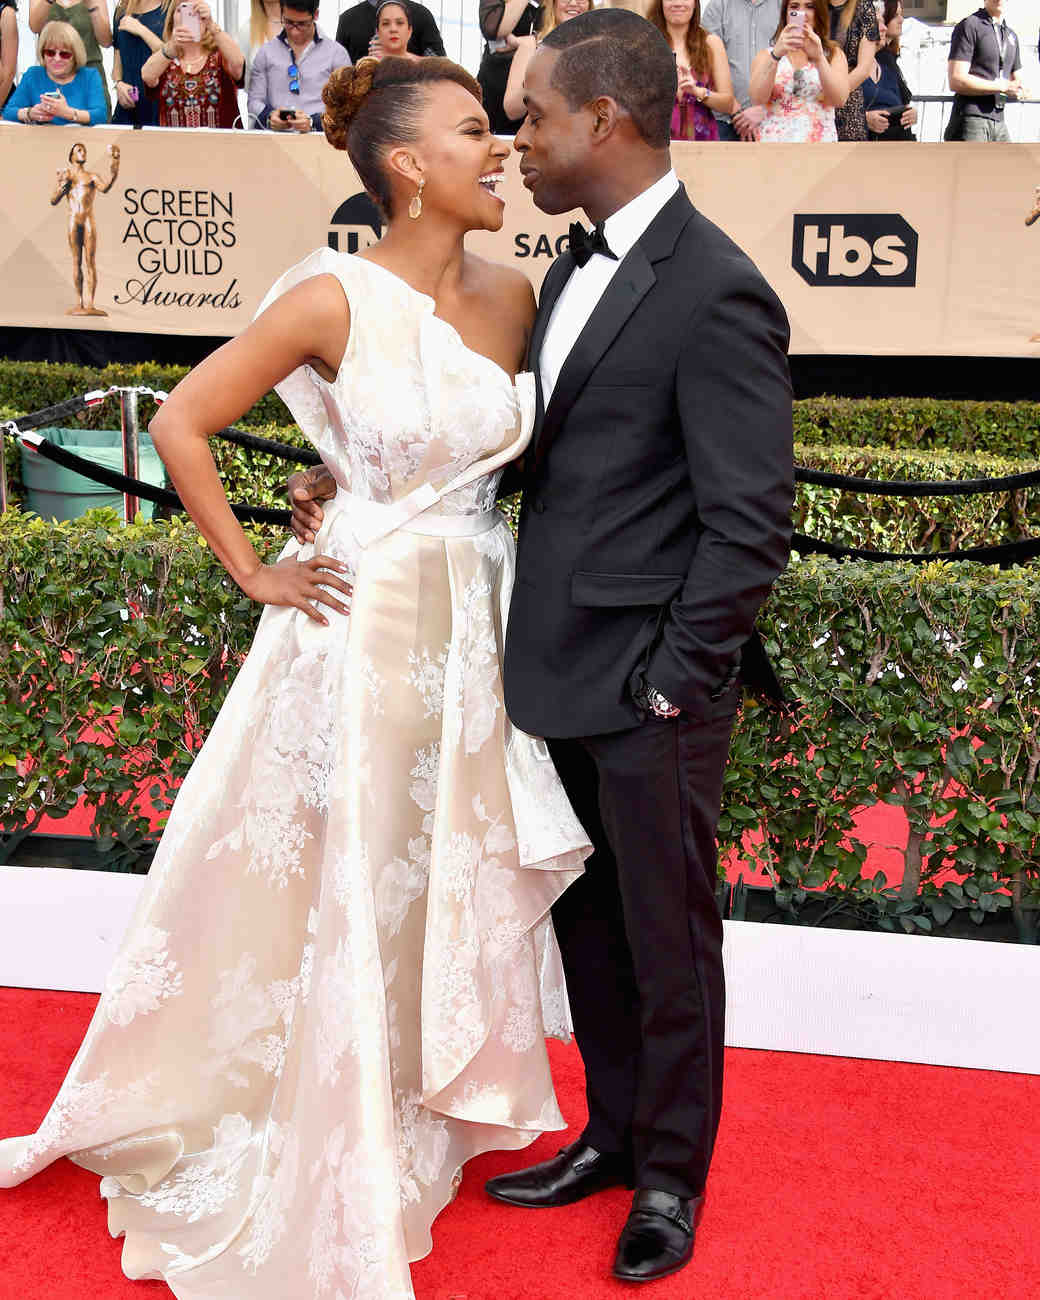 Sterling K Brown and Ryan Michelle Bathe Sag Awards 2017